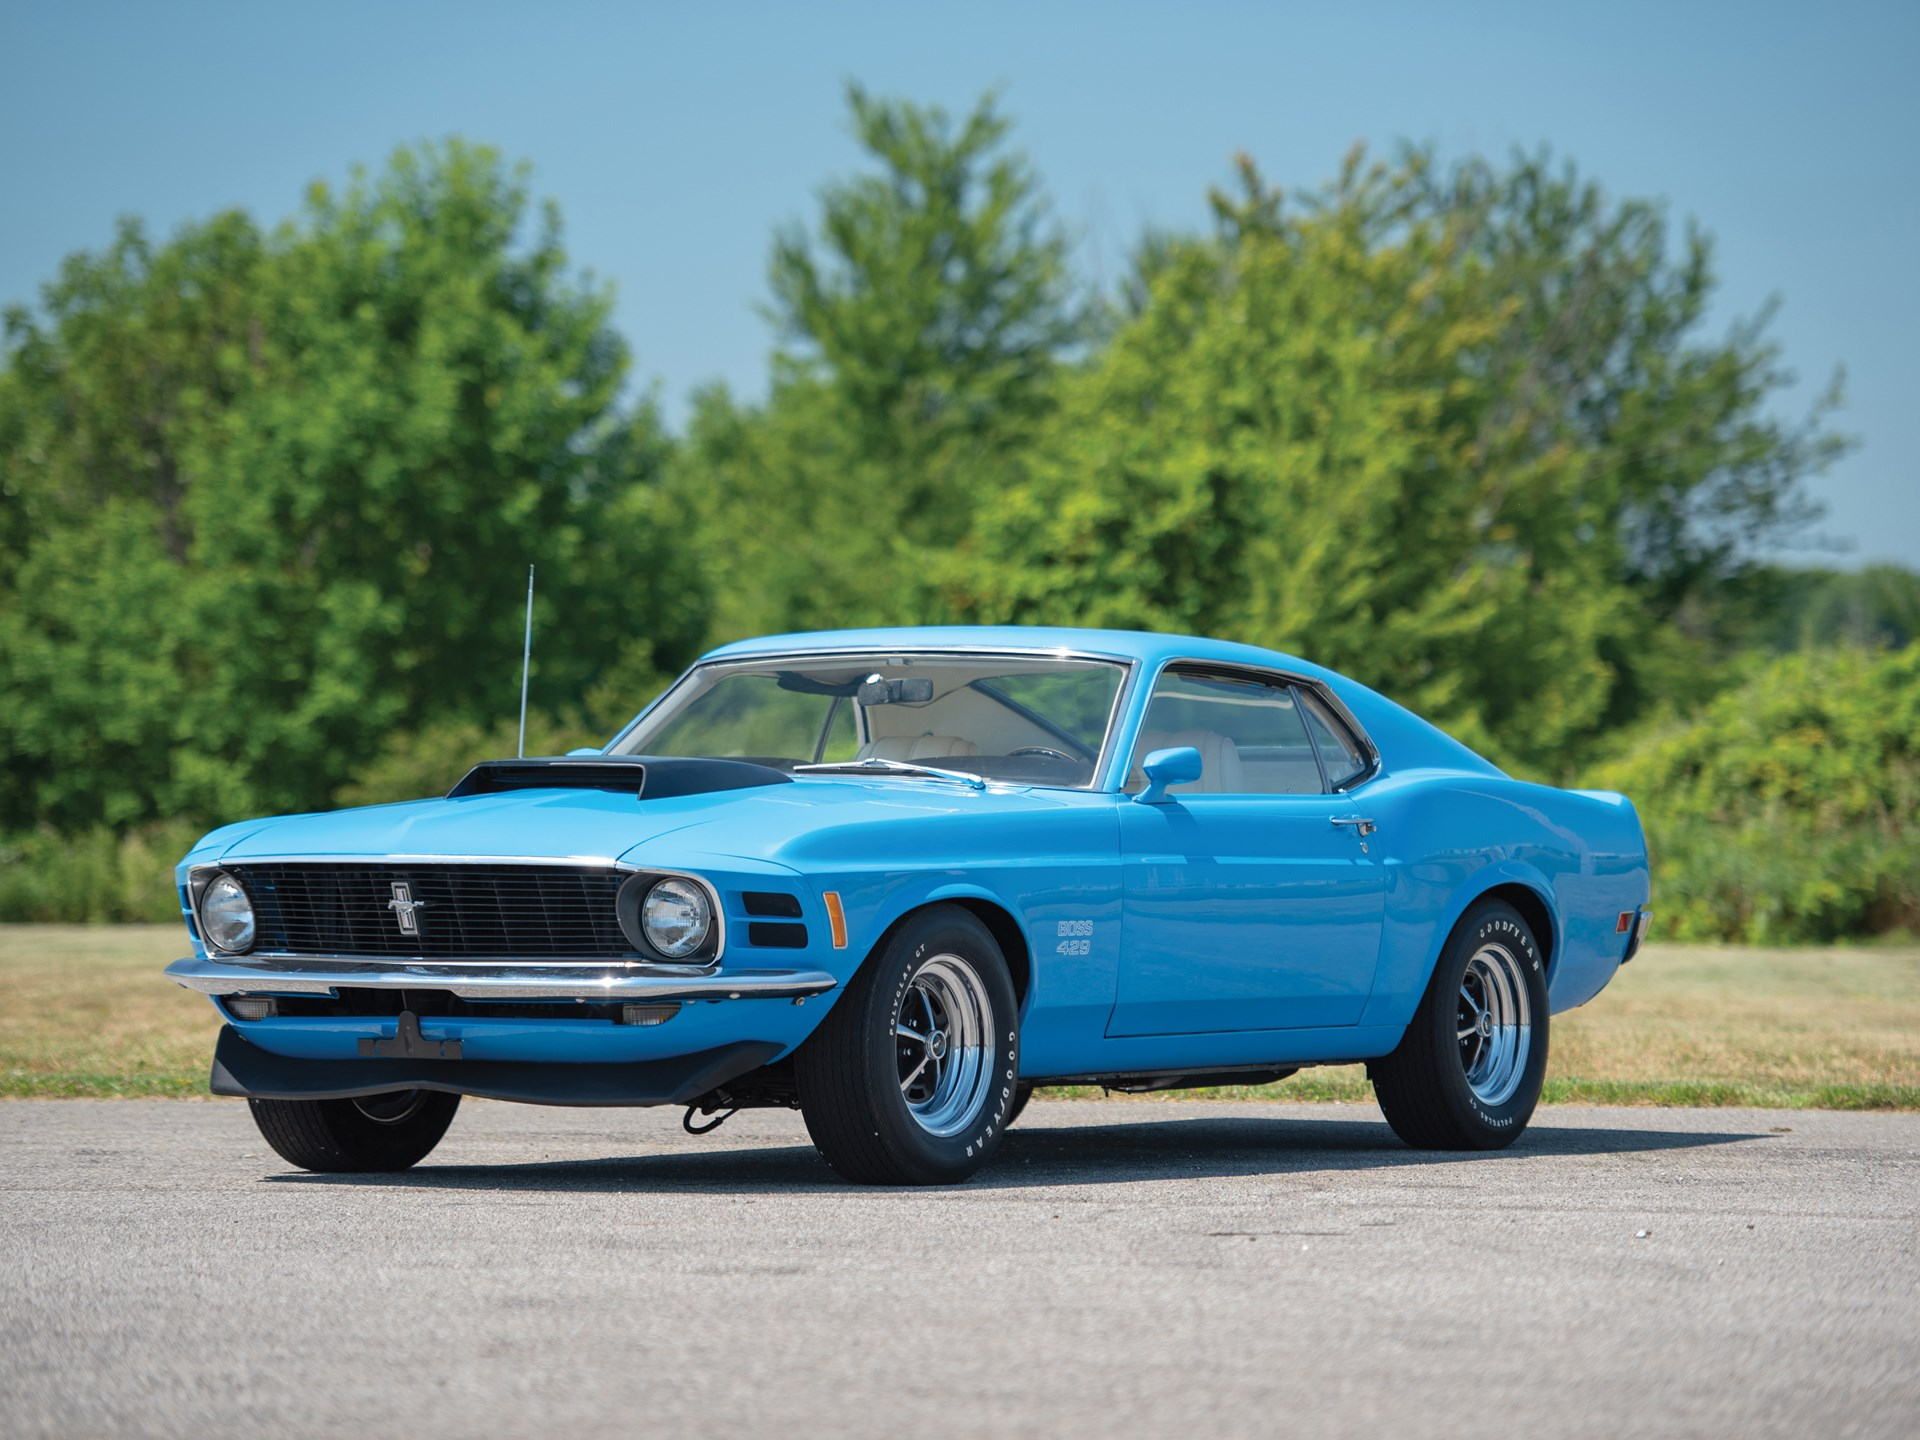 Mustang Boss 429 For Sale >> Mu 1969 Ford Mustang Boss 429 For Sale Usa